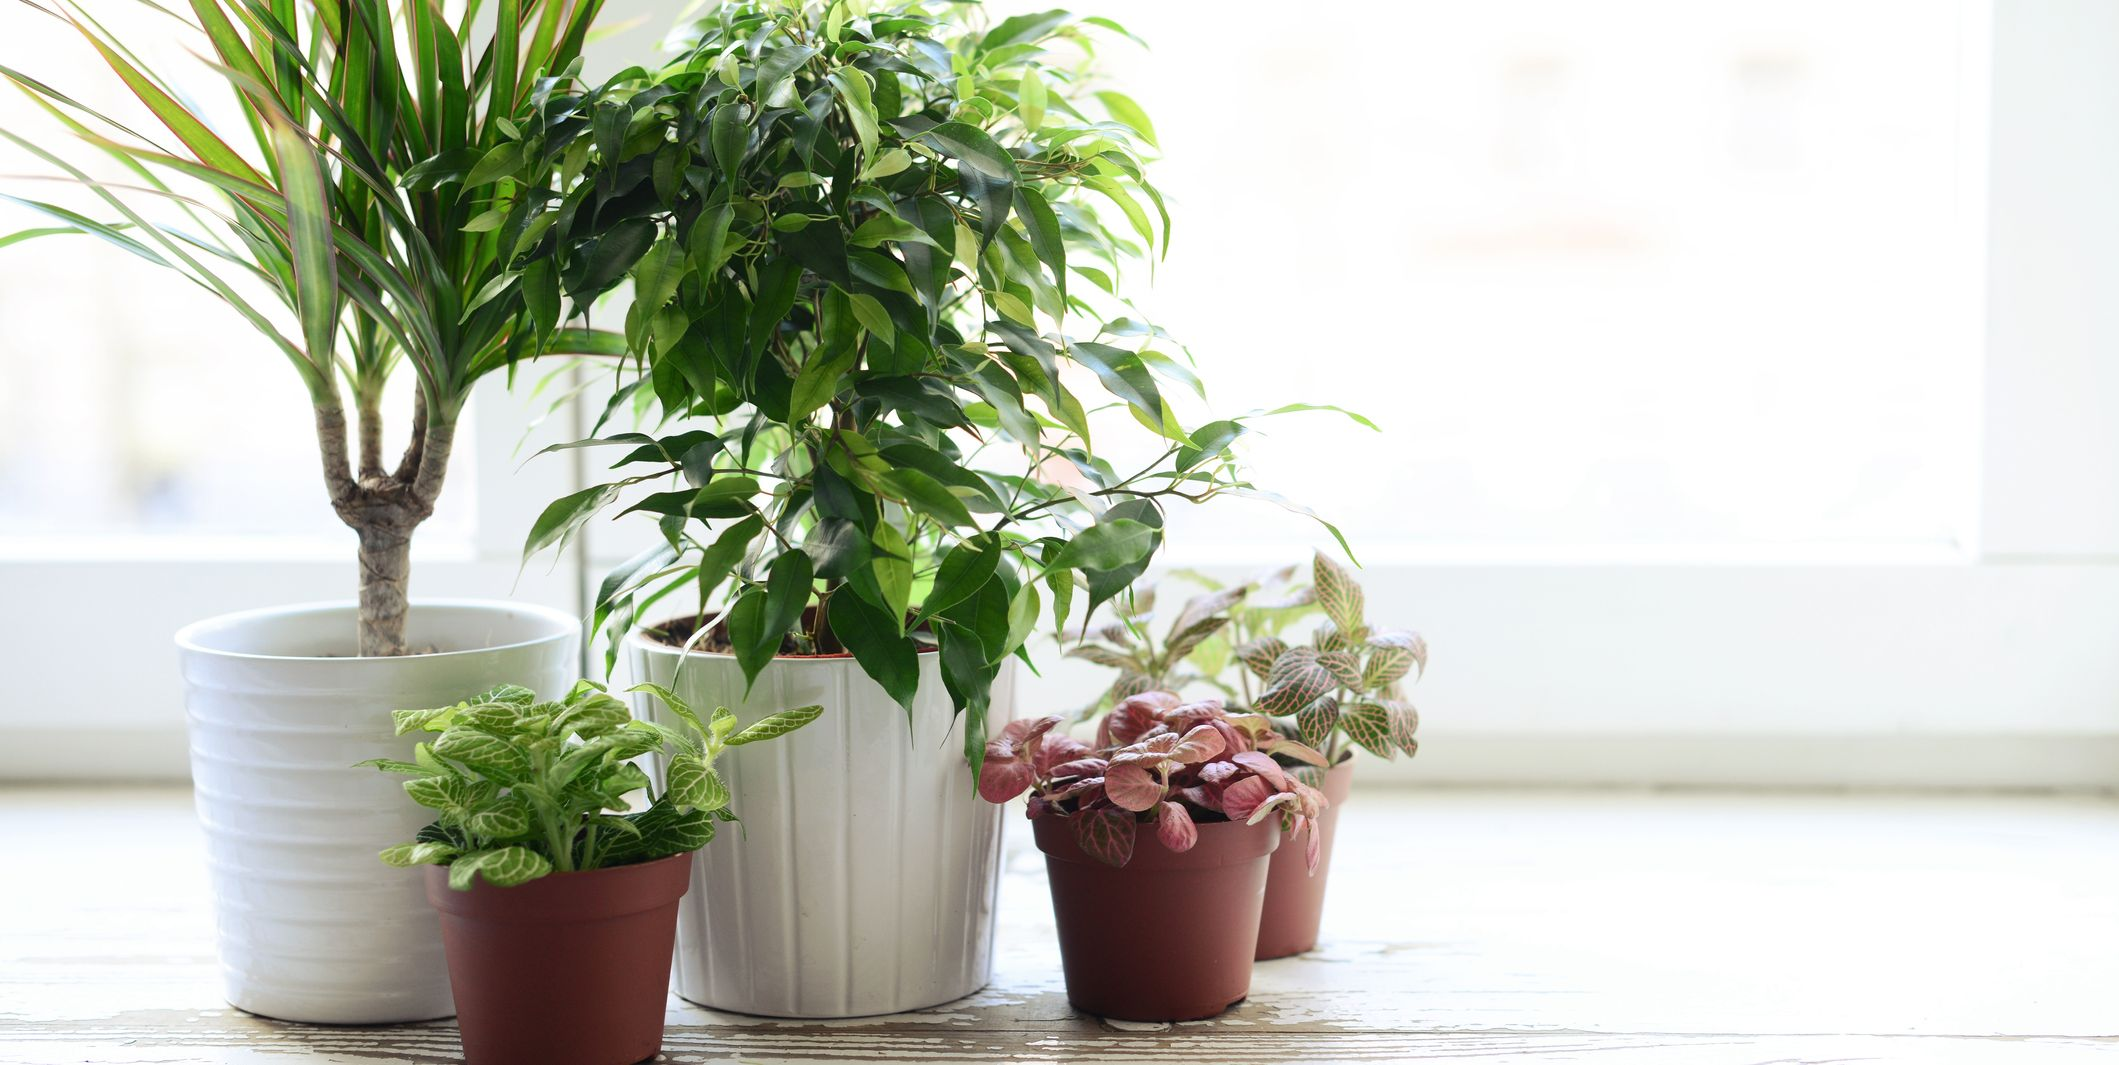 5 of the best-smelling houseplants to make your home smell amazing